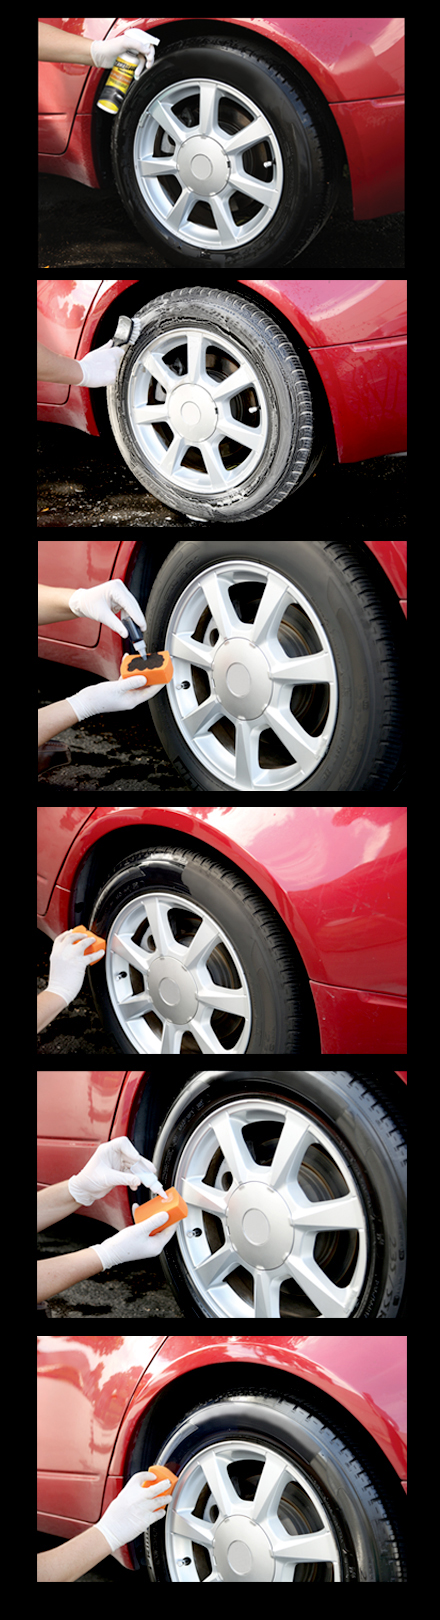 Permagloss Permanent Tire Protectant Tire Shine